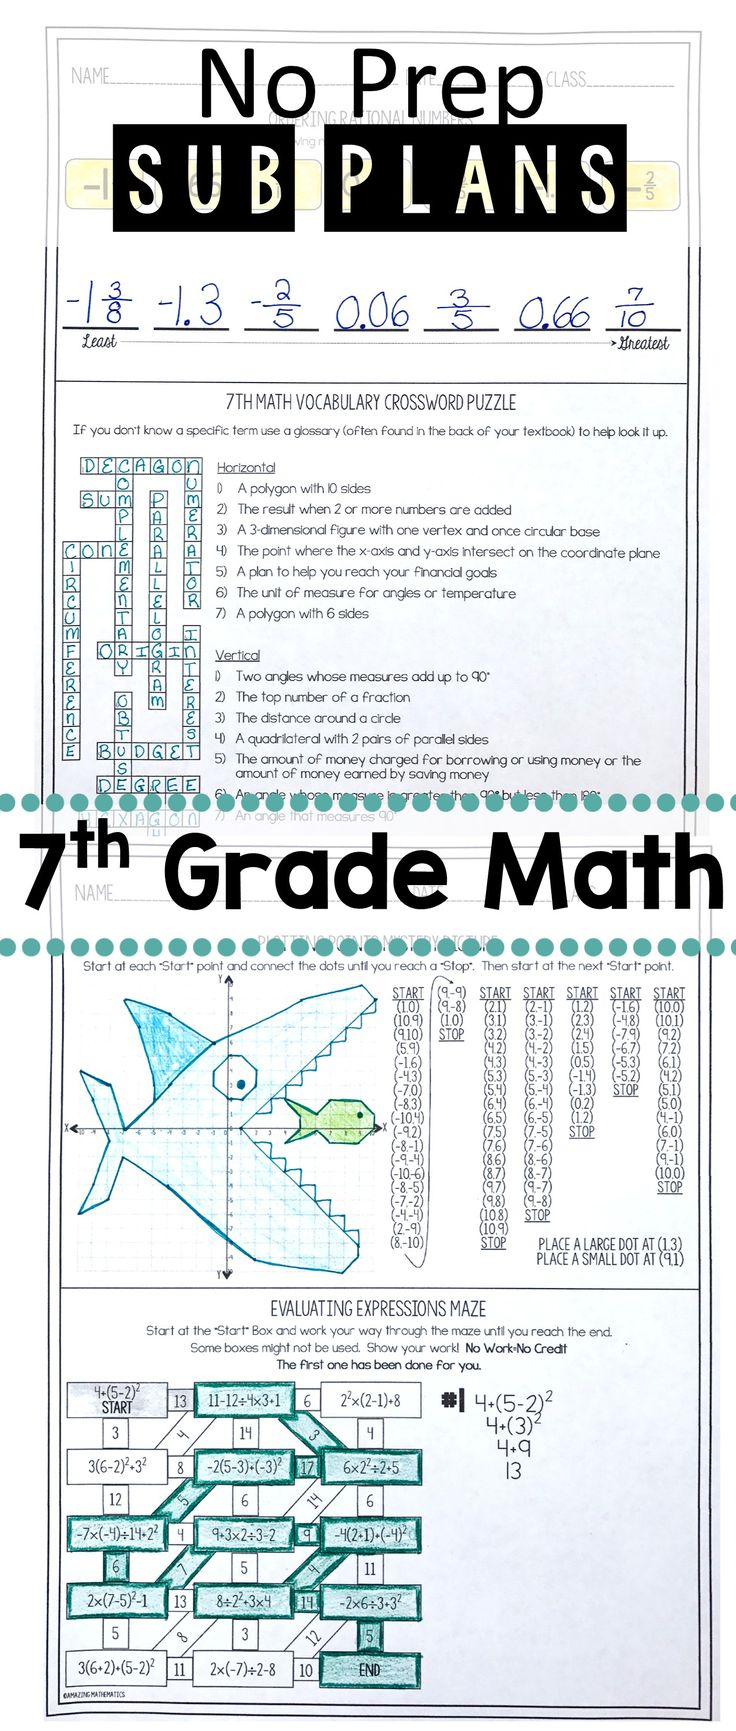 Workbooks worksheets for 7th grade math : 331 best 7th Grade Math Worksheets, Activities, Ideas, and Test ...